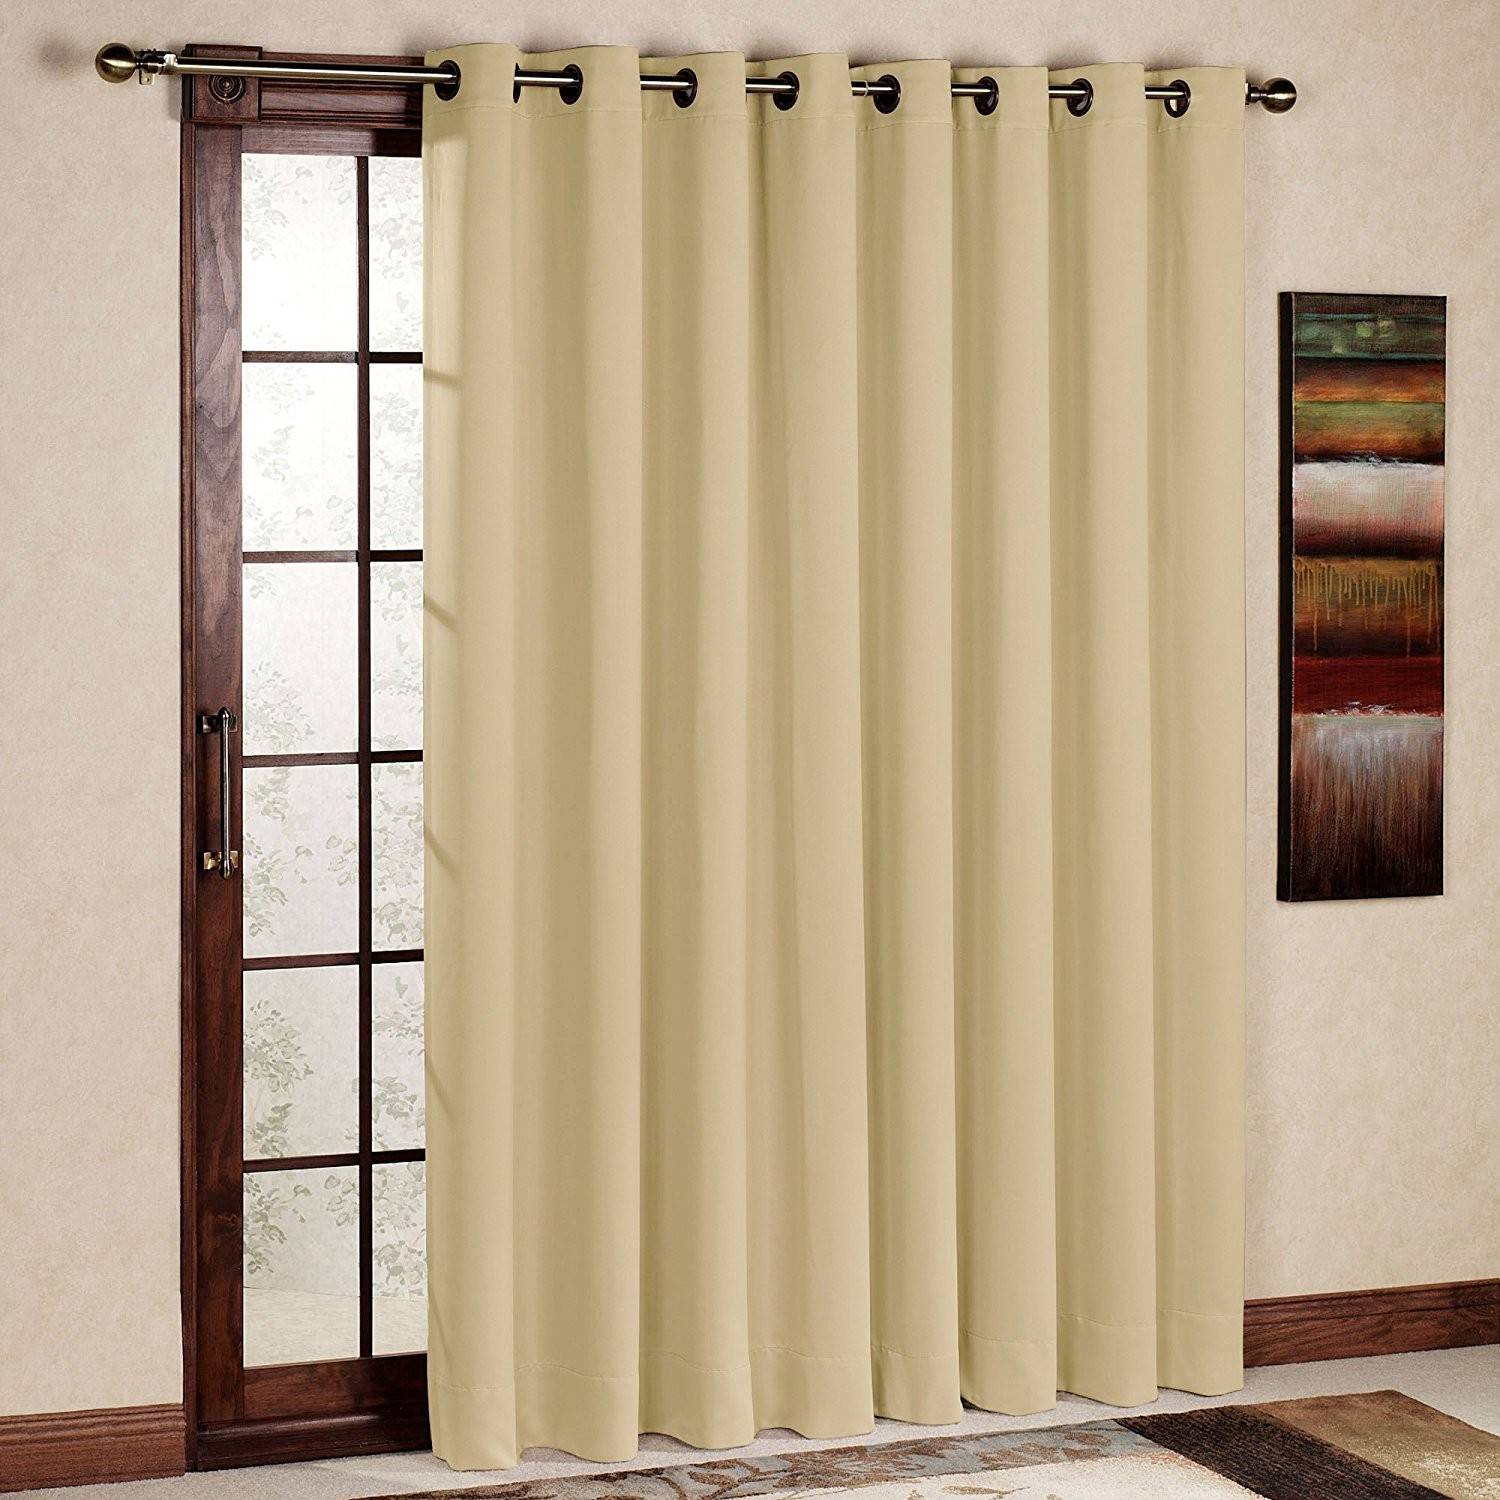 Patio Door Thermal Insulated Drapes | Thermal Insulated Curtains | Thermal Window Curtains